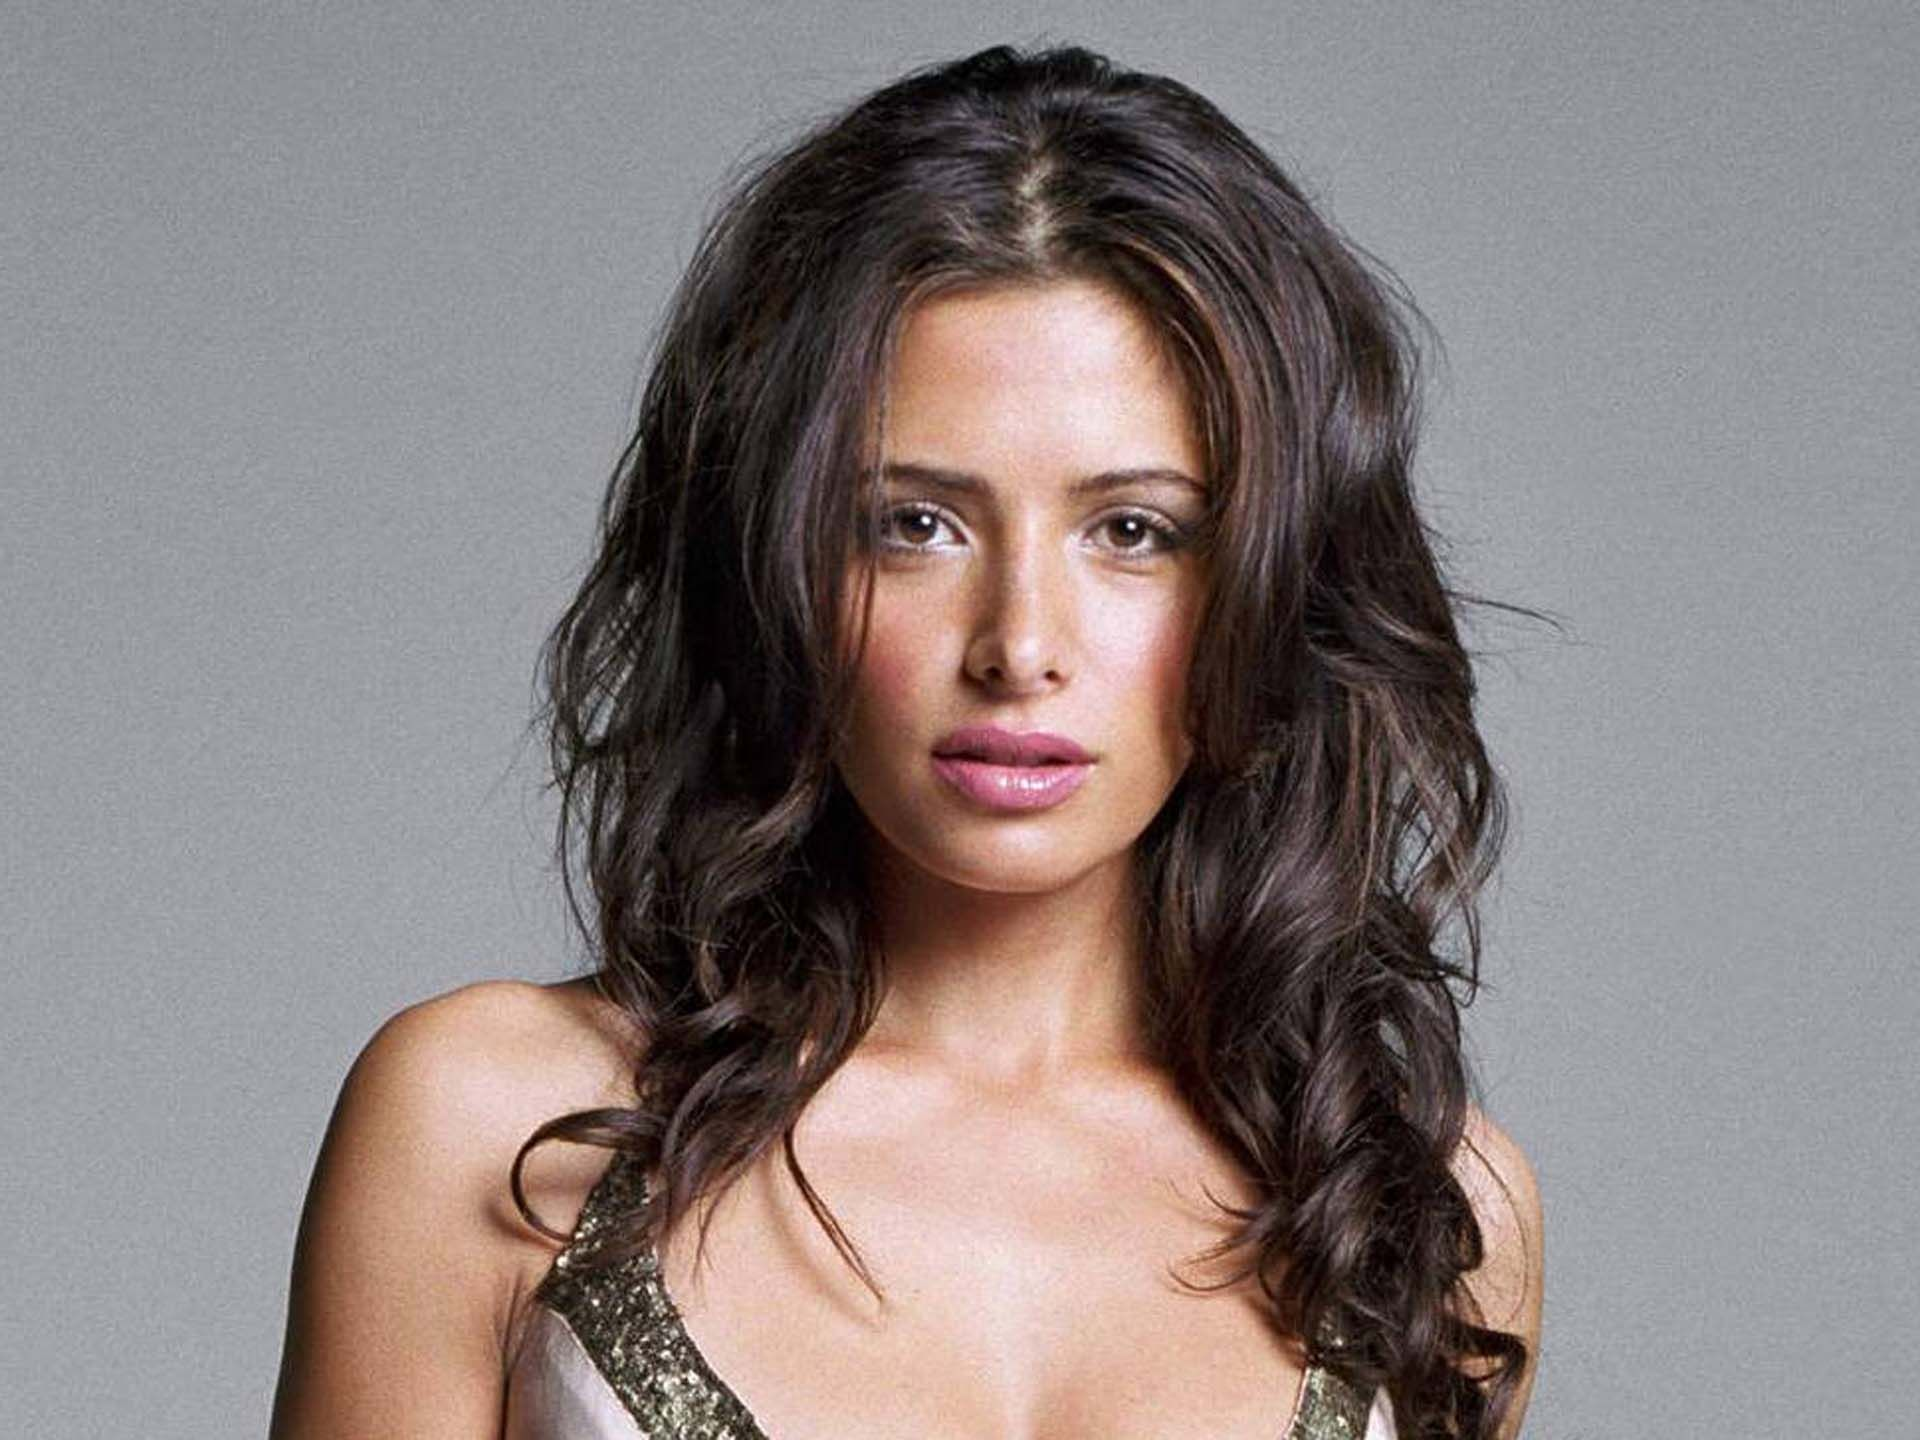 Sarah Shahi HD Wallpapers Free Download in High Quality and Resolution